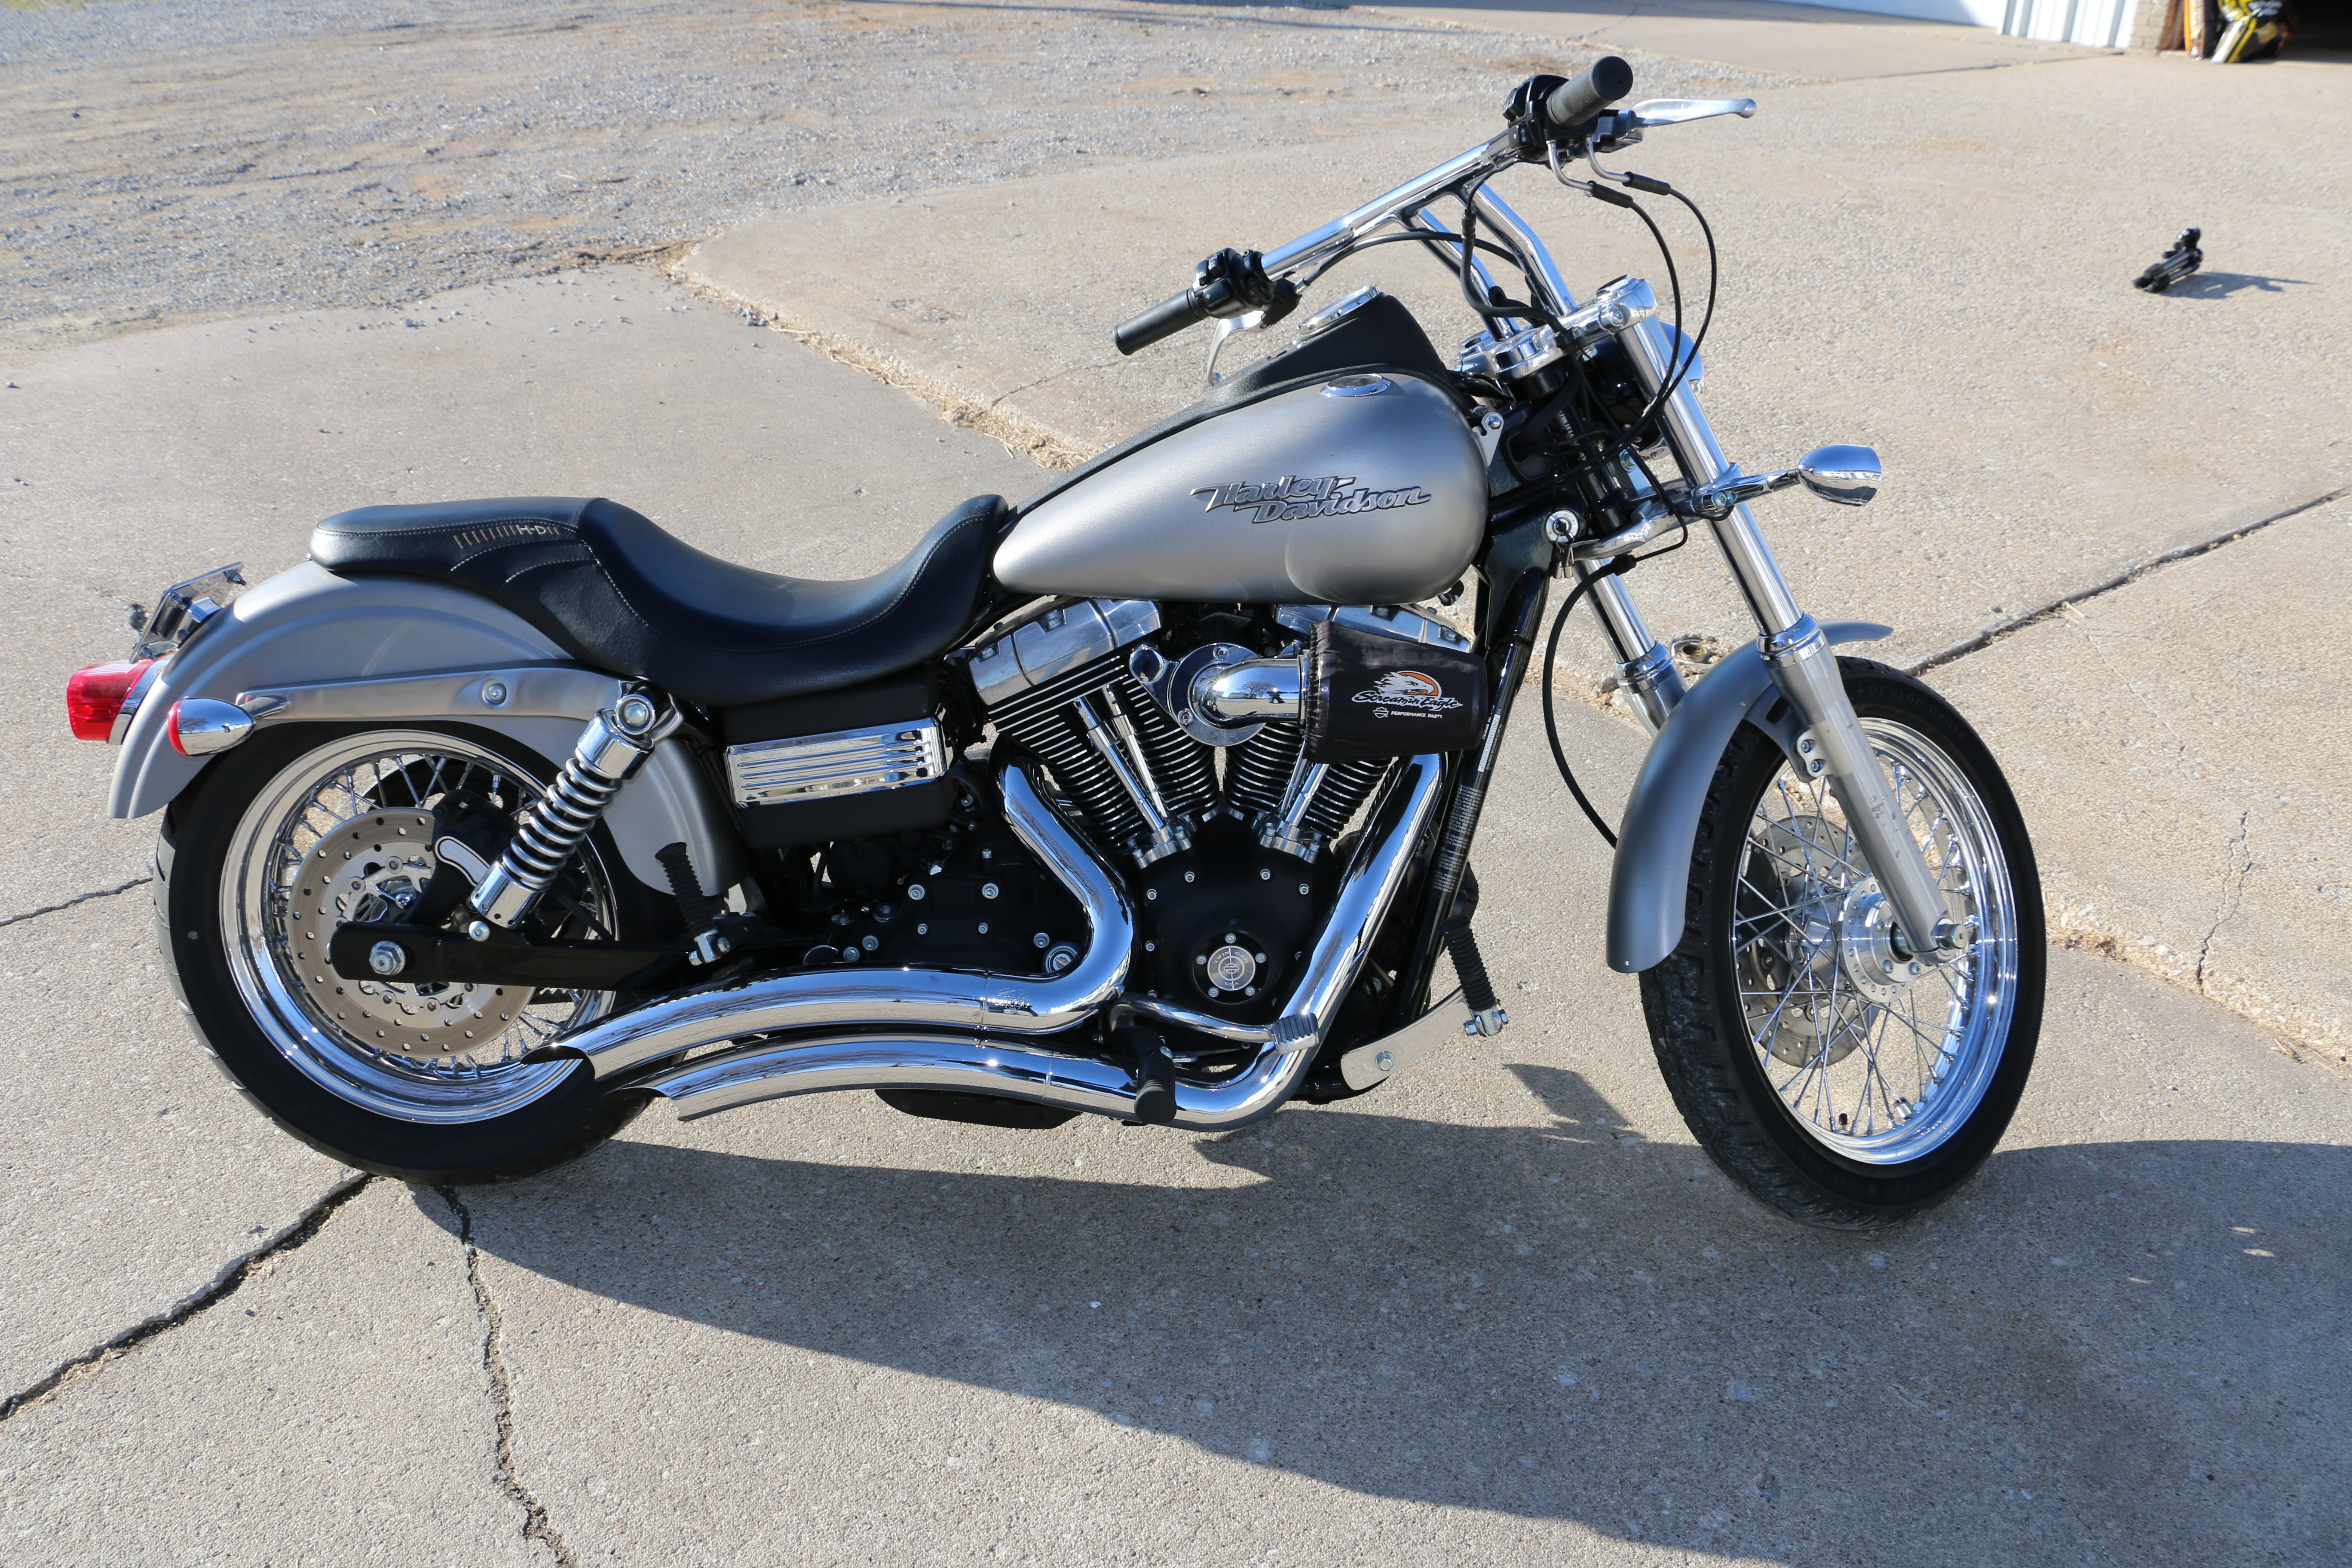 all new used harley davidson dyna street bob 677 bikes page 1 chopperexchange. Black Bedroom Furniture Sets. Home Design Ideas